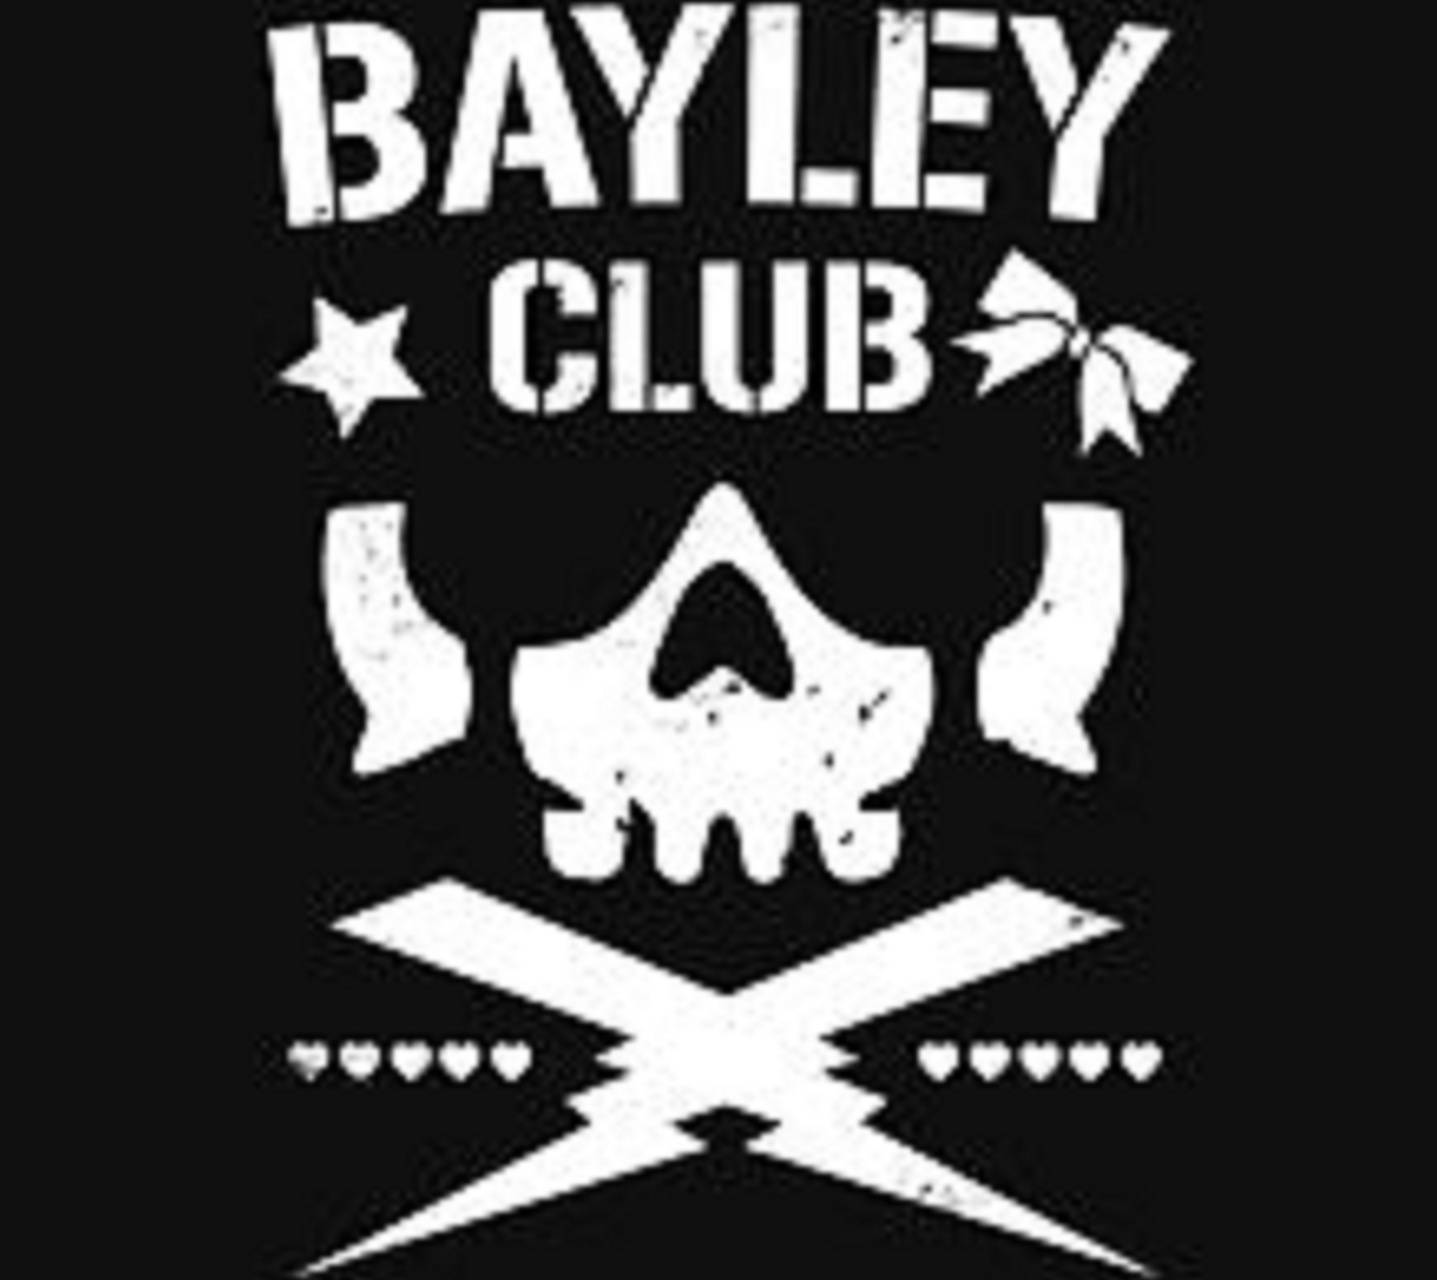 Bayley Club Wallpaper By Darthramious 4c Free On Zedge